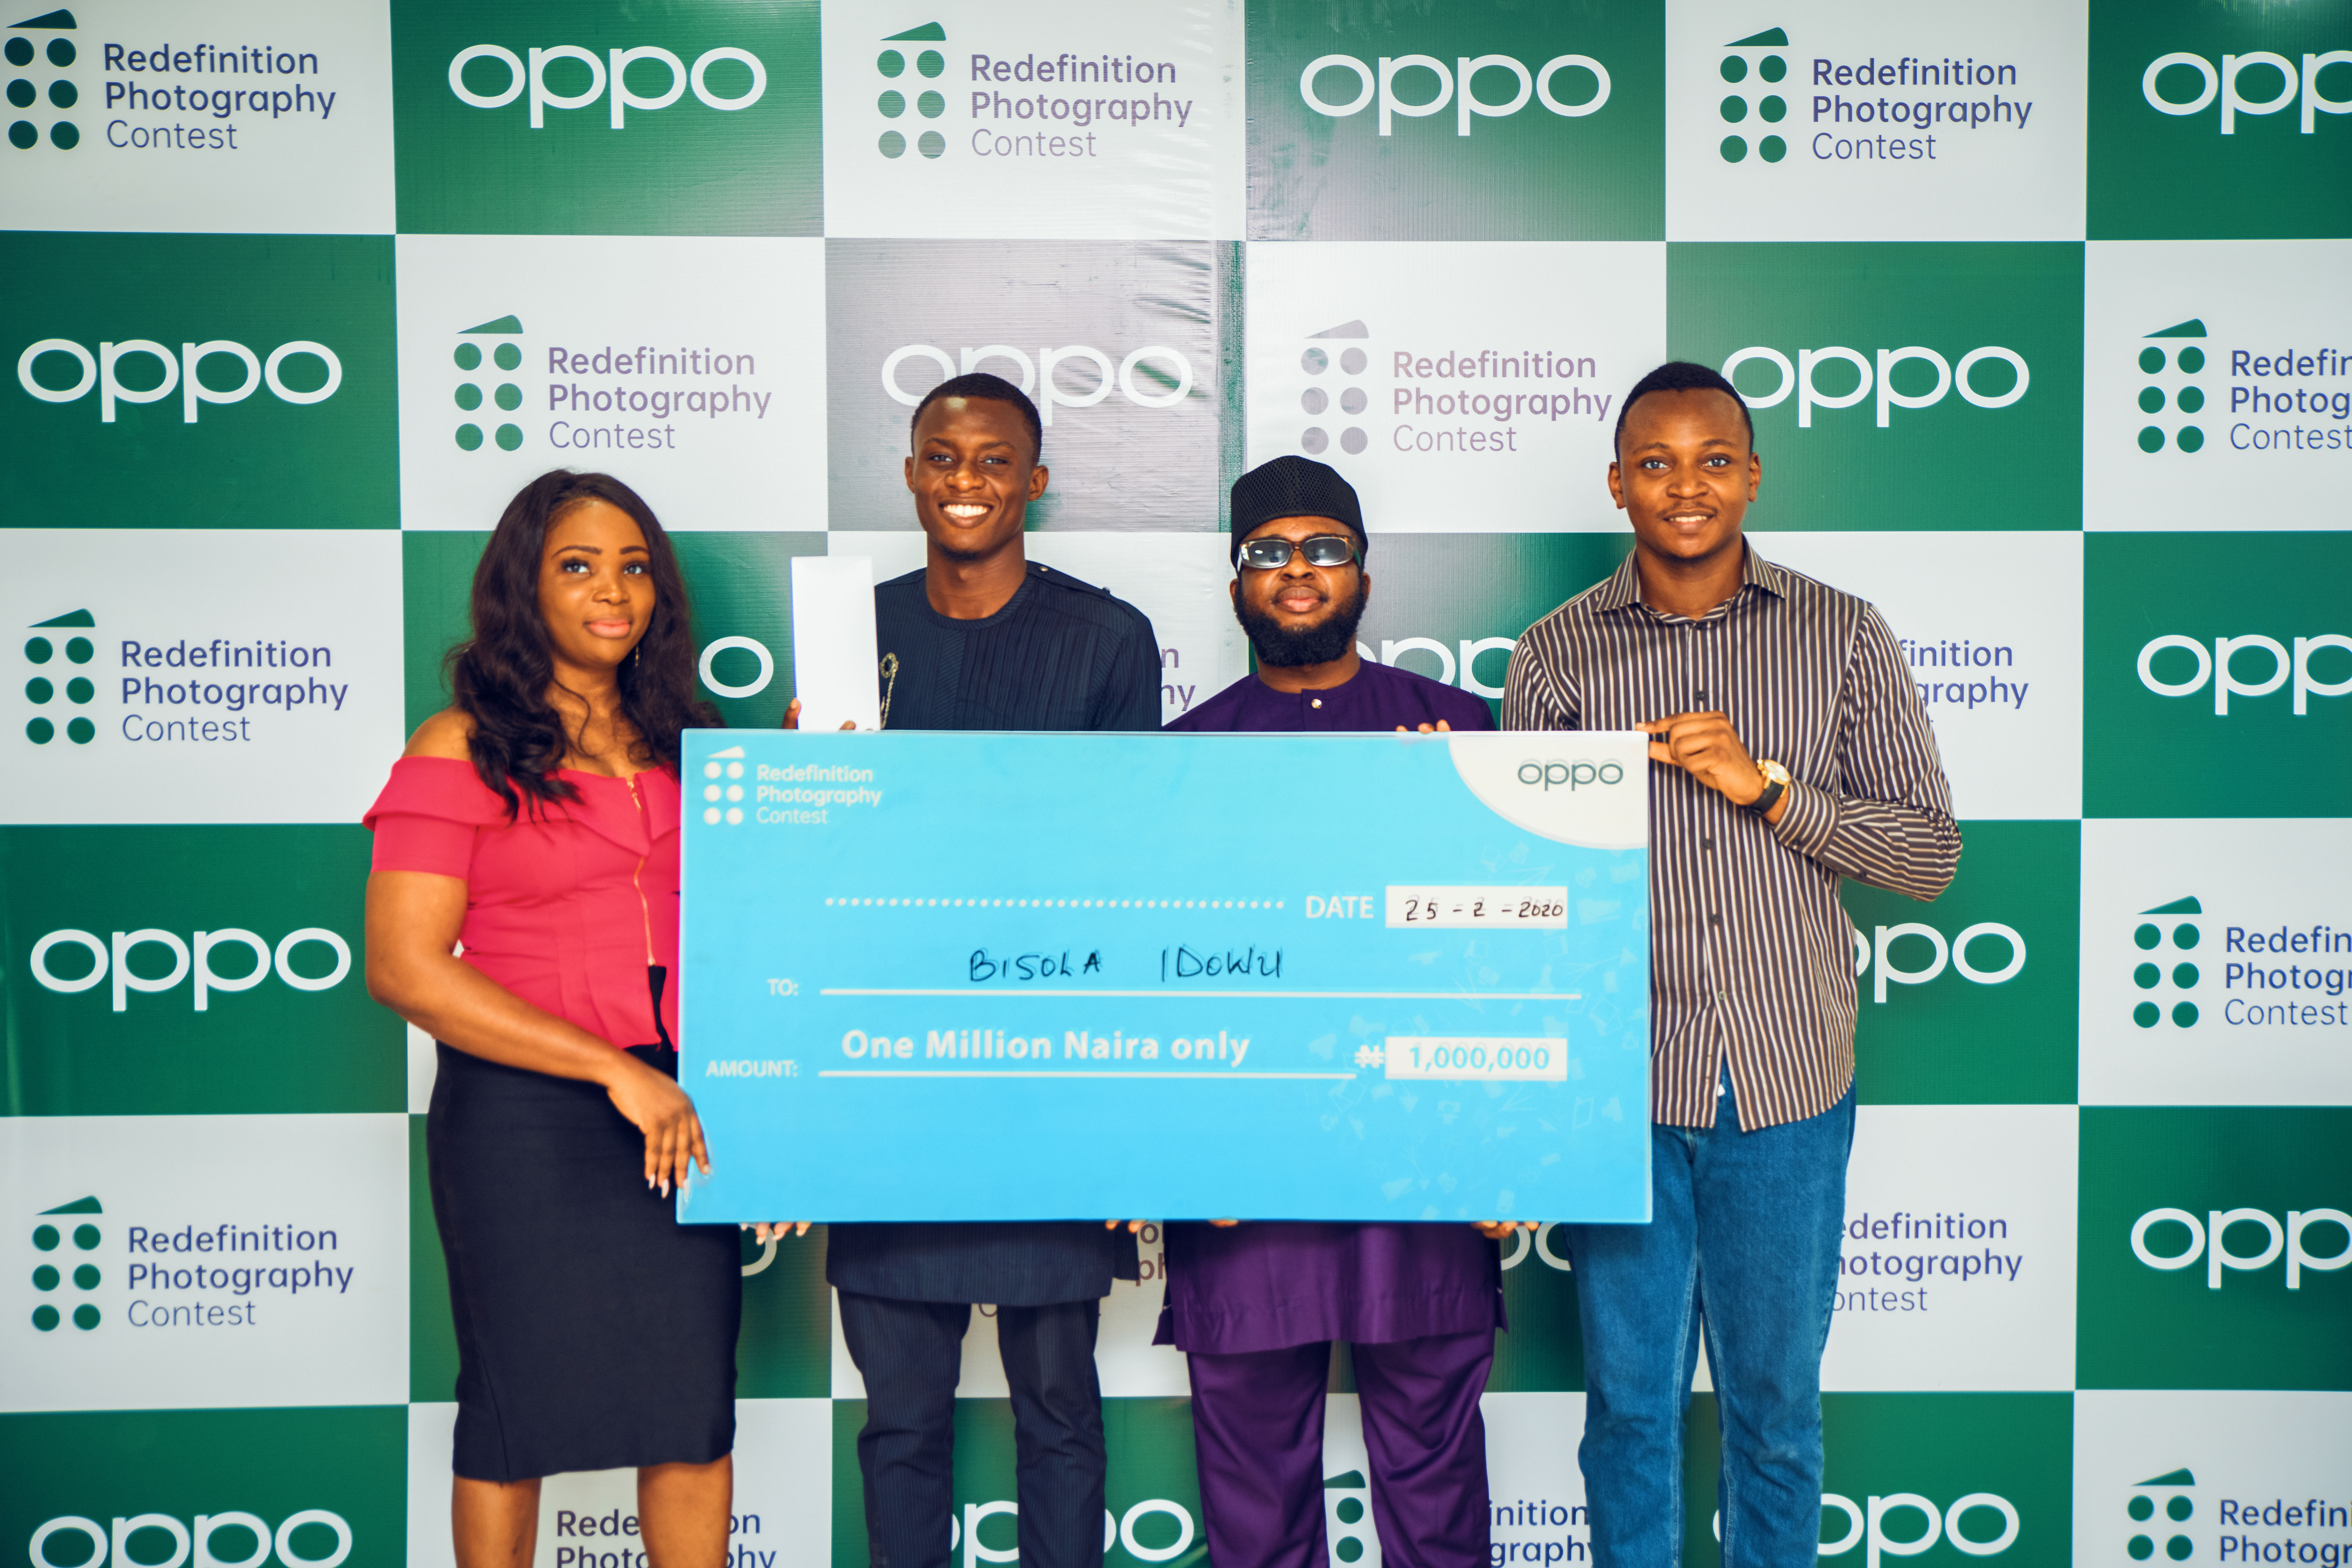 OPPO Mobile Ends Redefinition Photography Contest, Produces Three Winners (Photos) - Brand Spur